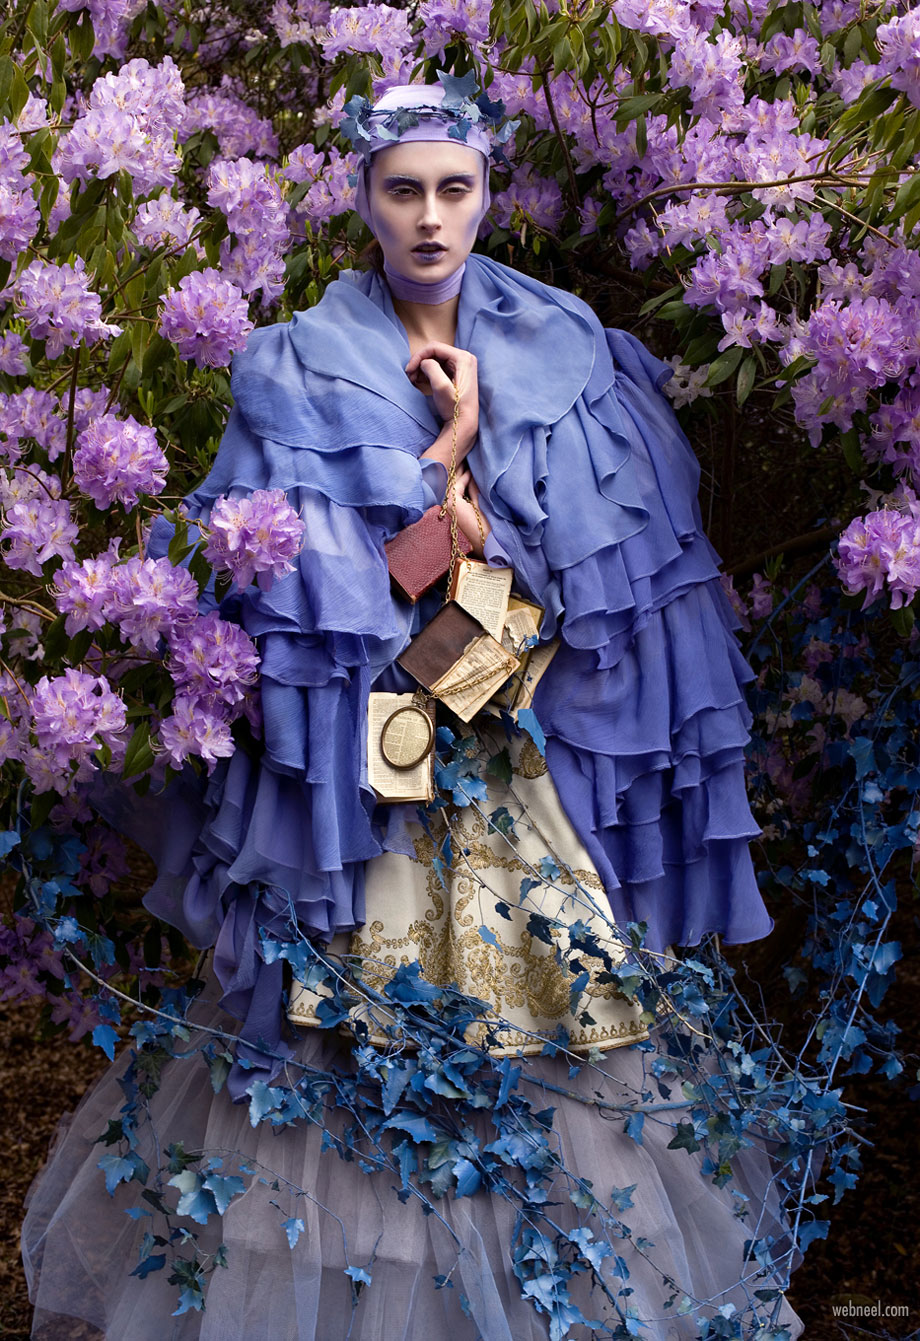 fantasy photography portrait the blue saint by kristy mitchell